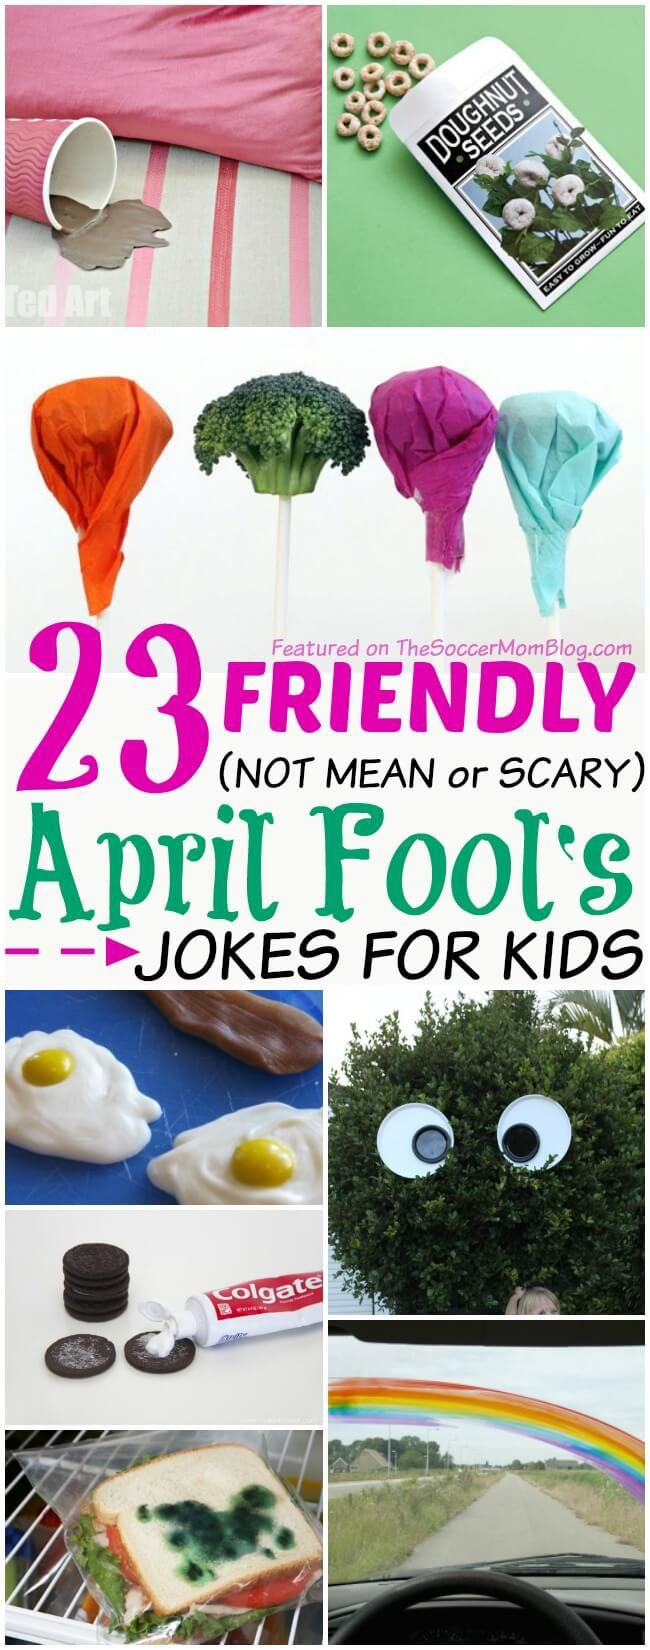 How to make april fools day chocolate bunny filled with veggies - Kids Will Love Being In On These Goofy Pranks A Fun Collection Of